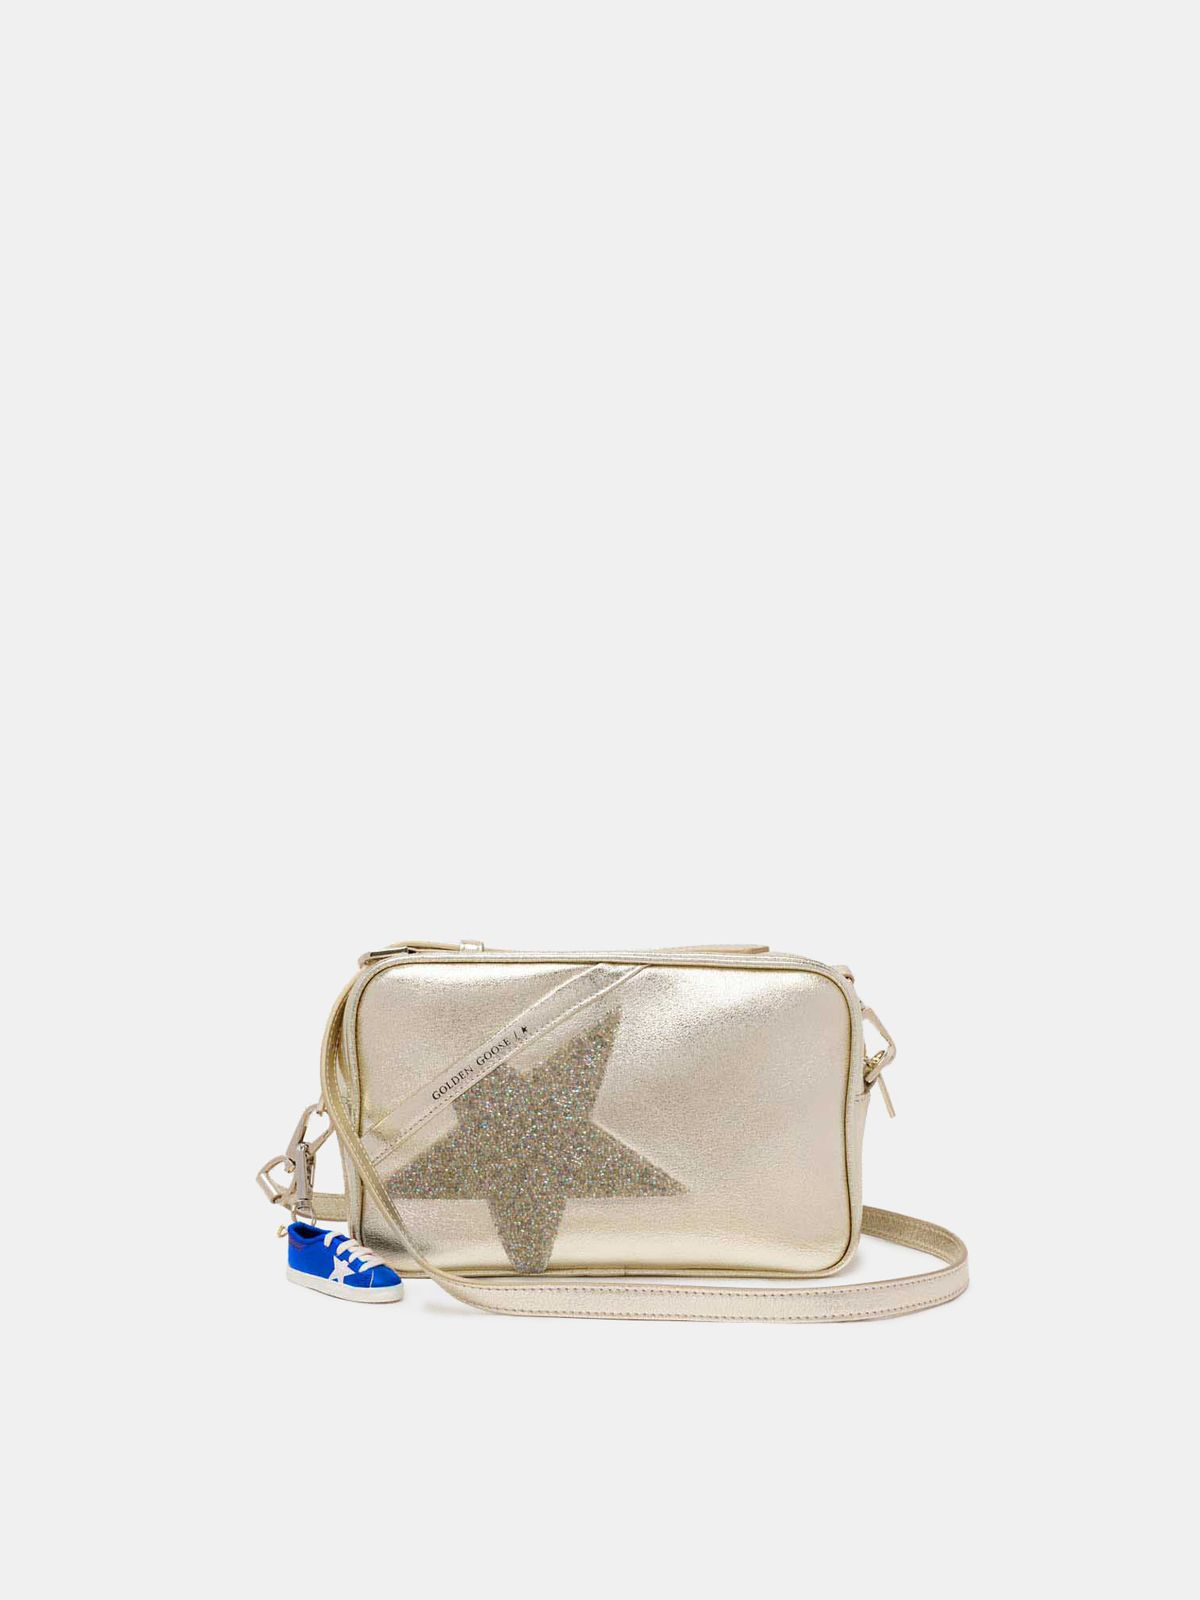 Sac Star Bag d'or avec cristaux